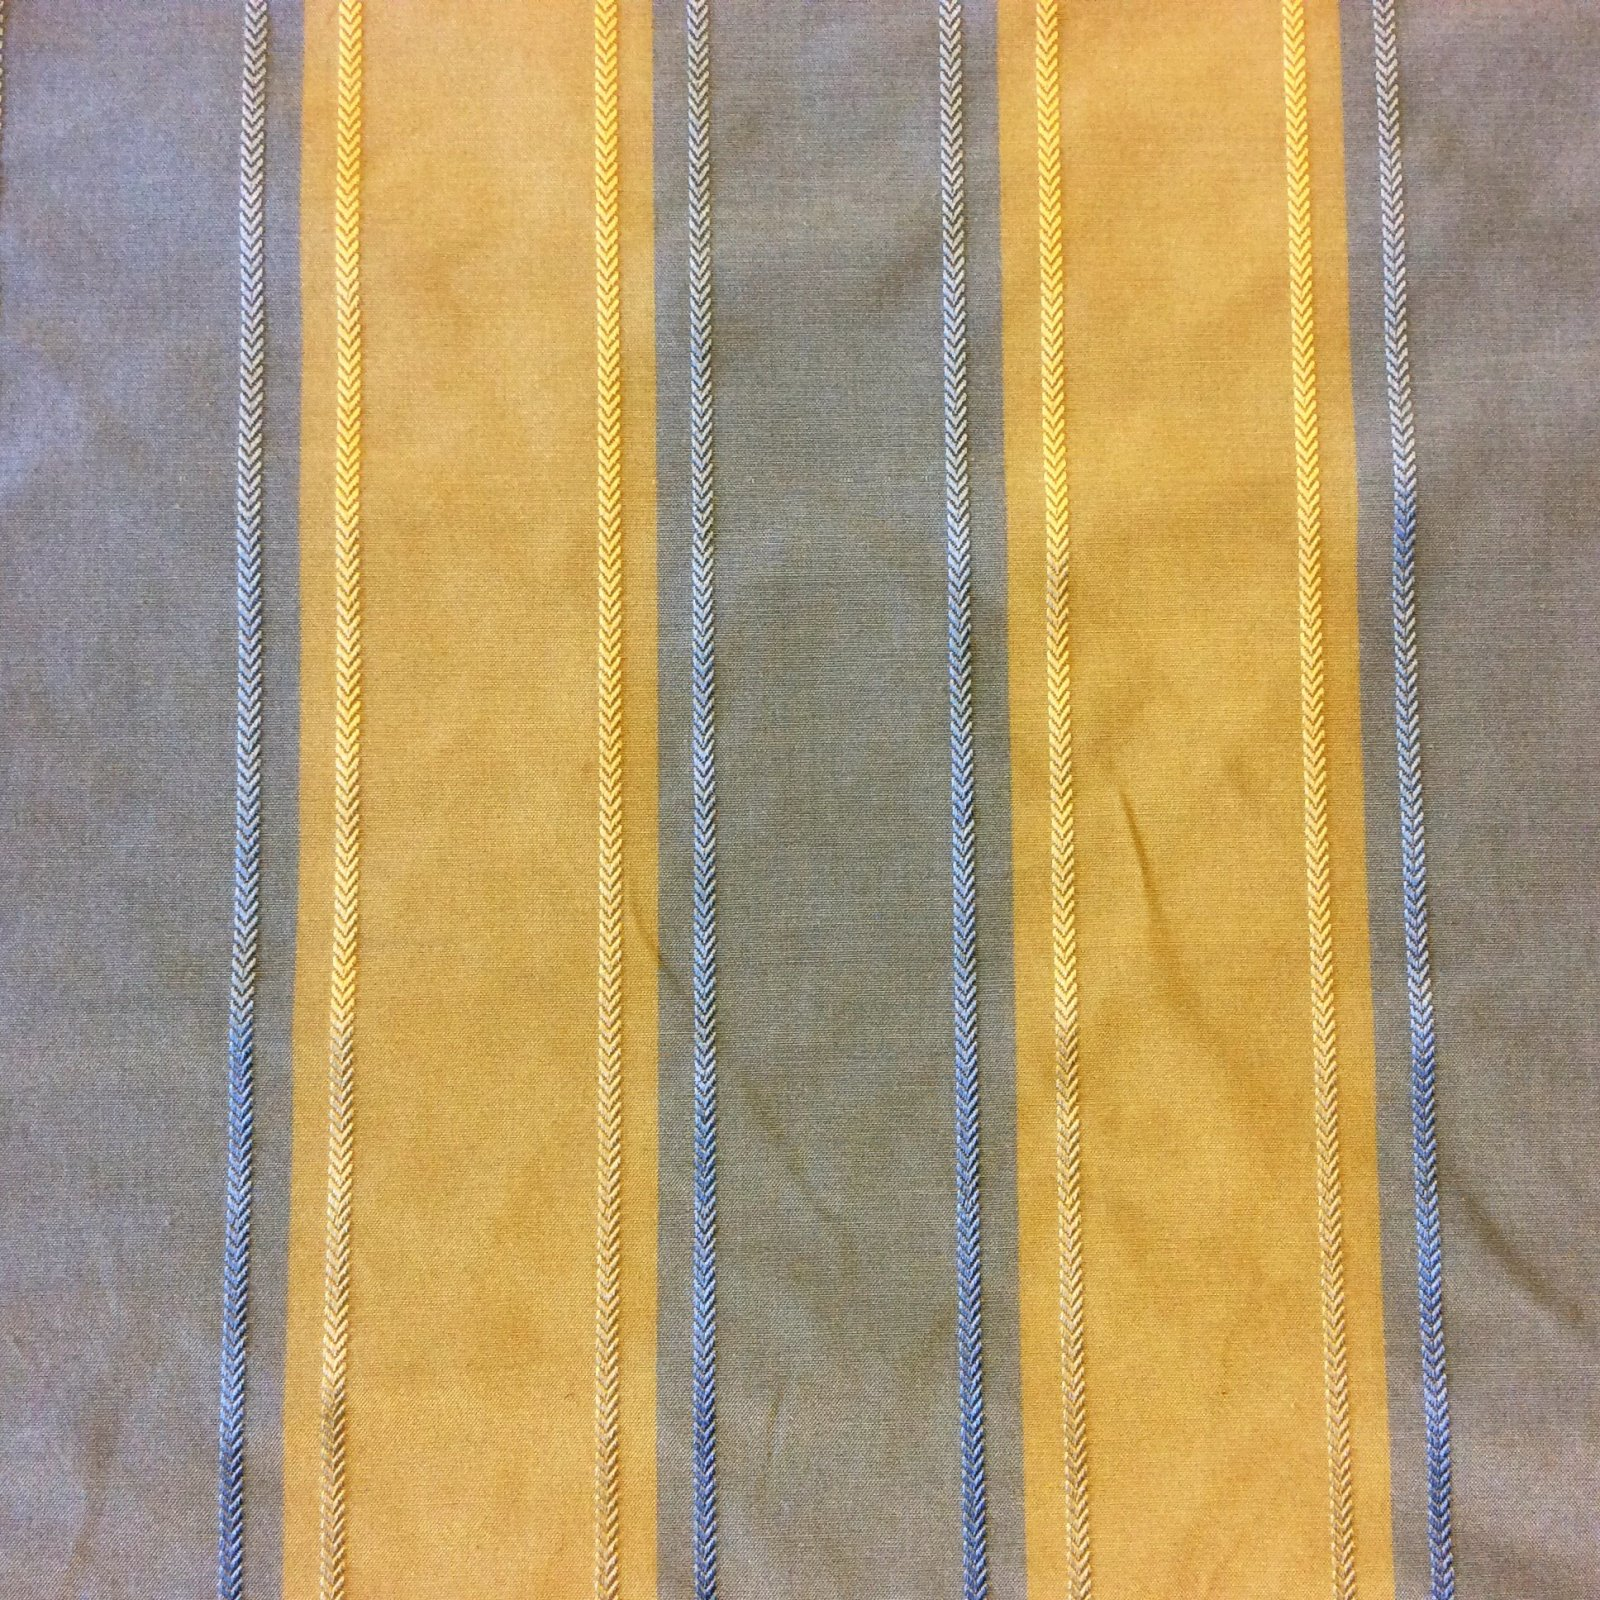 HD752 Regency Style Sky Blue and Butter Yellow Gold Vertical Stripe with Jacquard Herringbone Accent Extraordinary Silk Fabric Drapery Fabric.